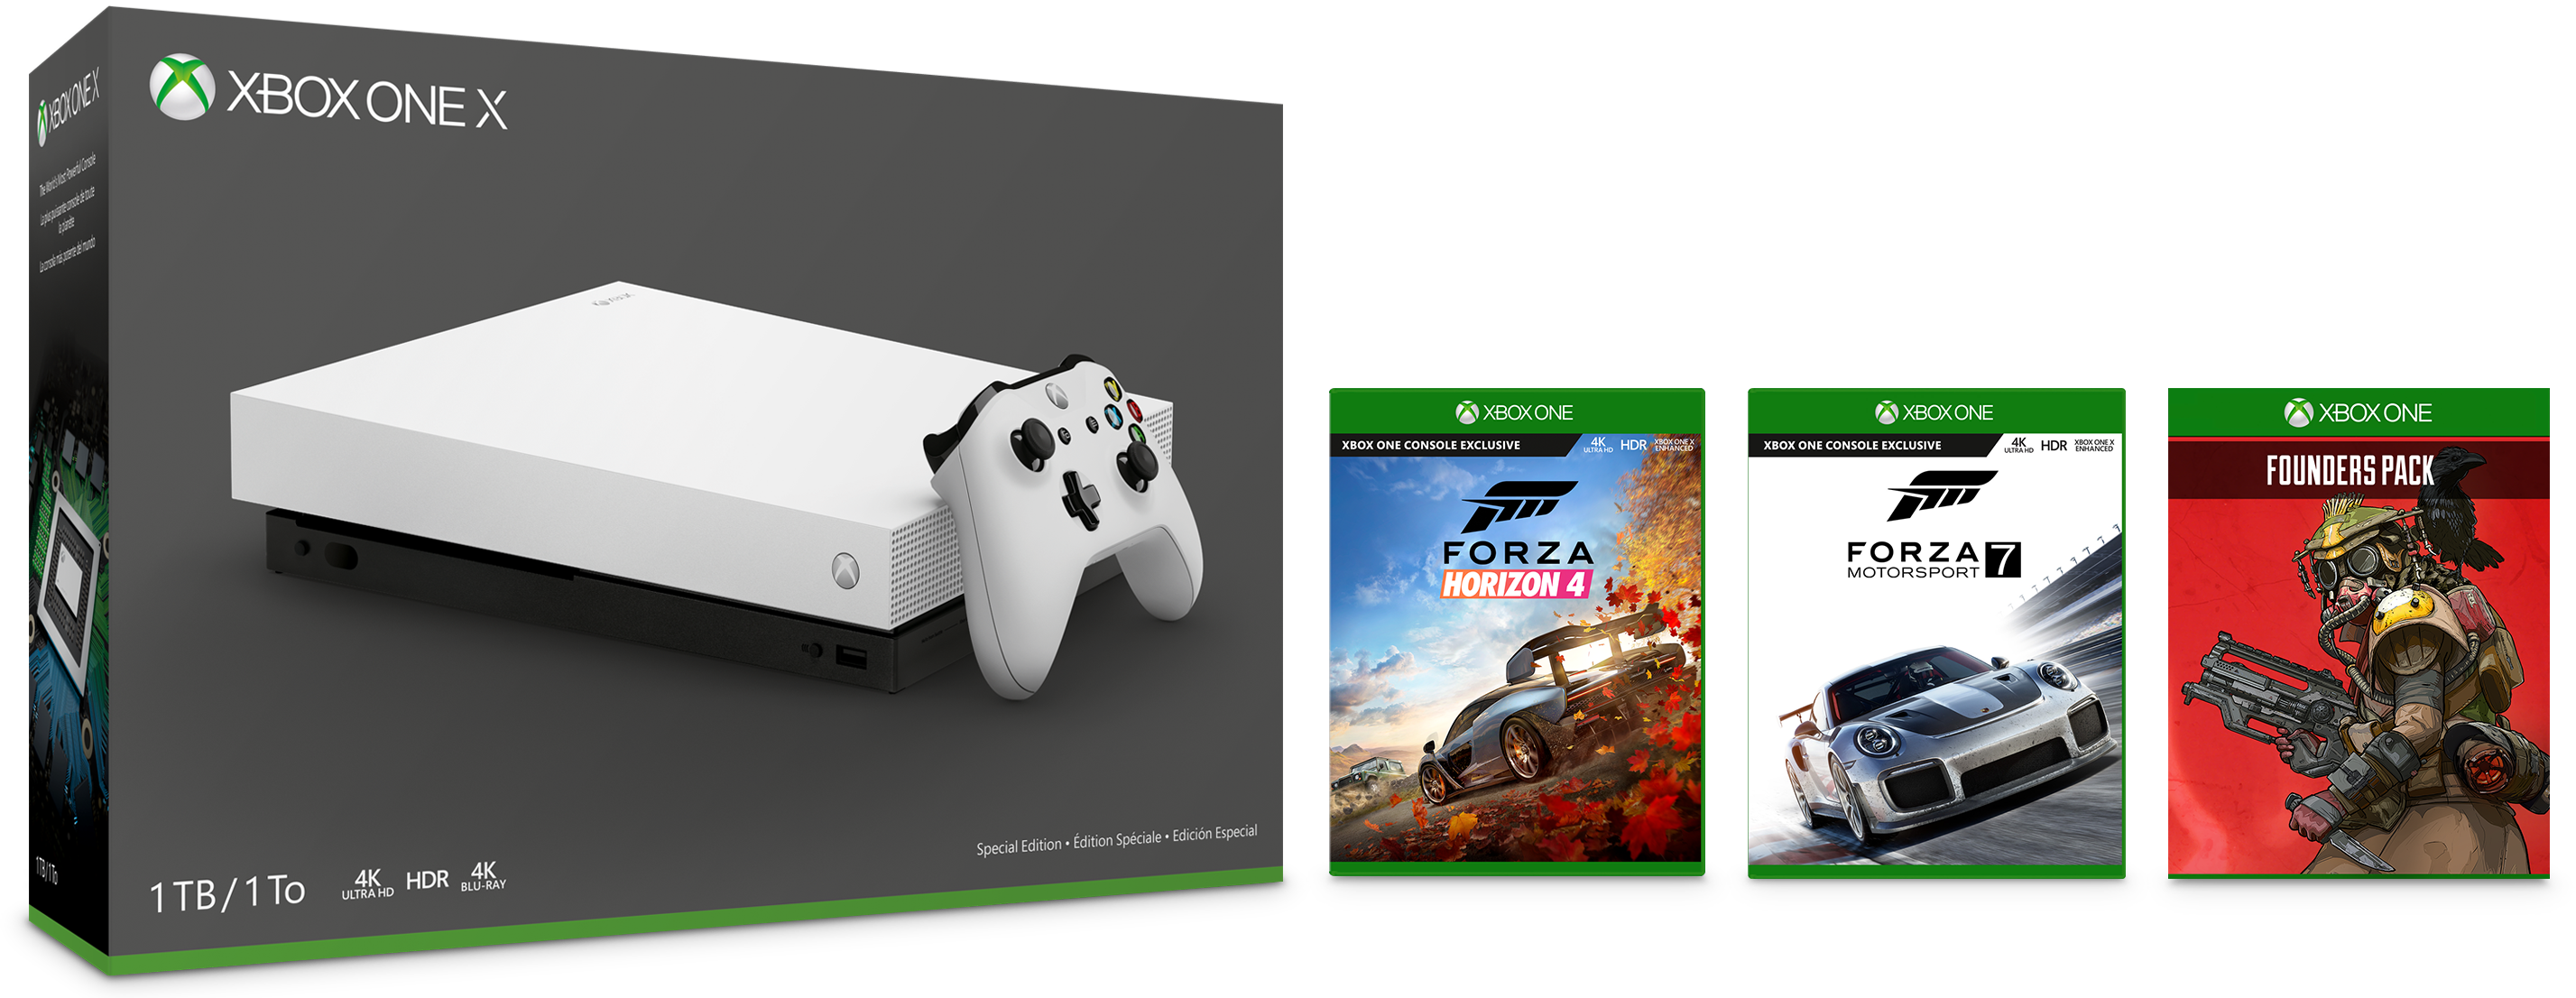 Xbox One X LE White 1TB Console and Apex Legends Founder's Pack